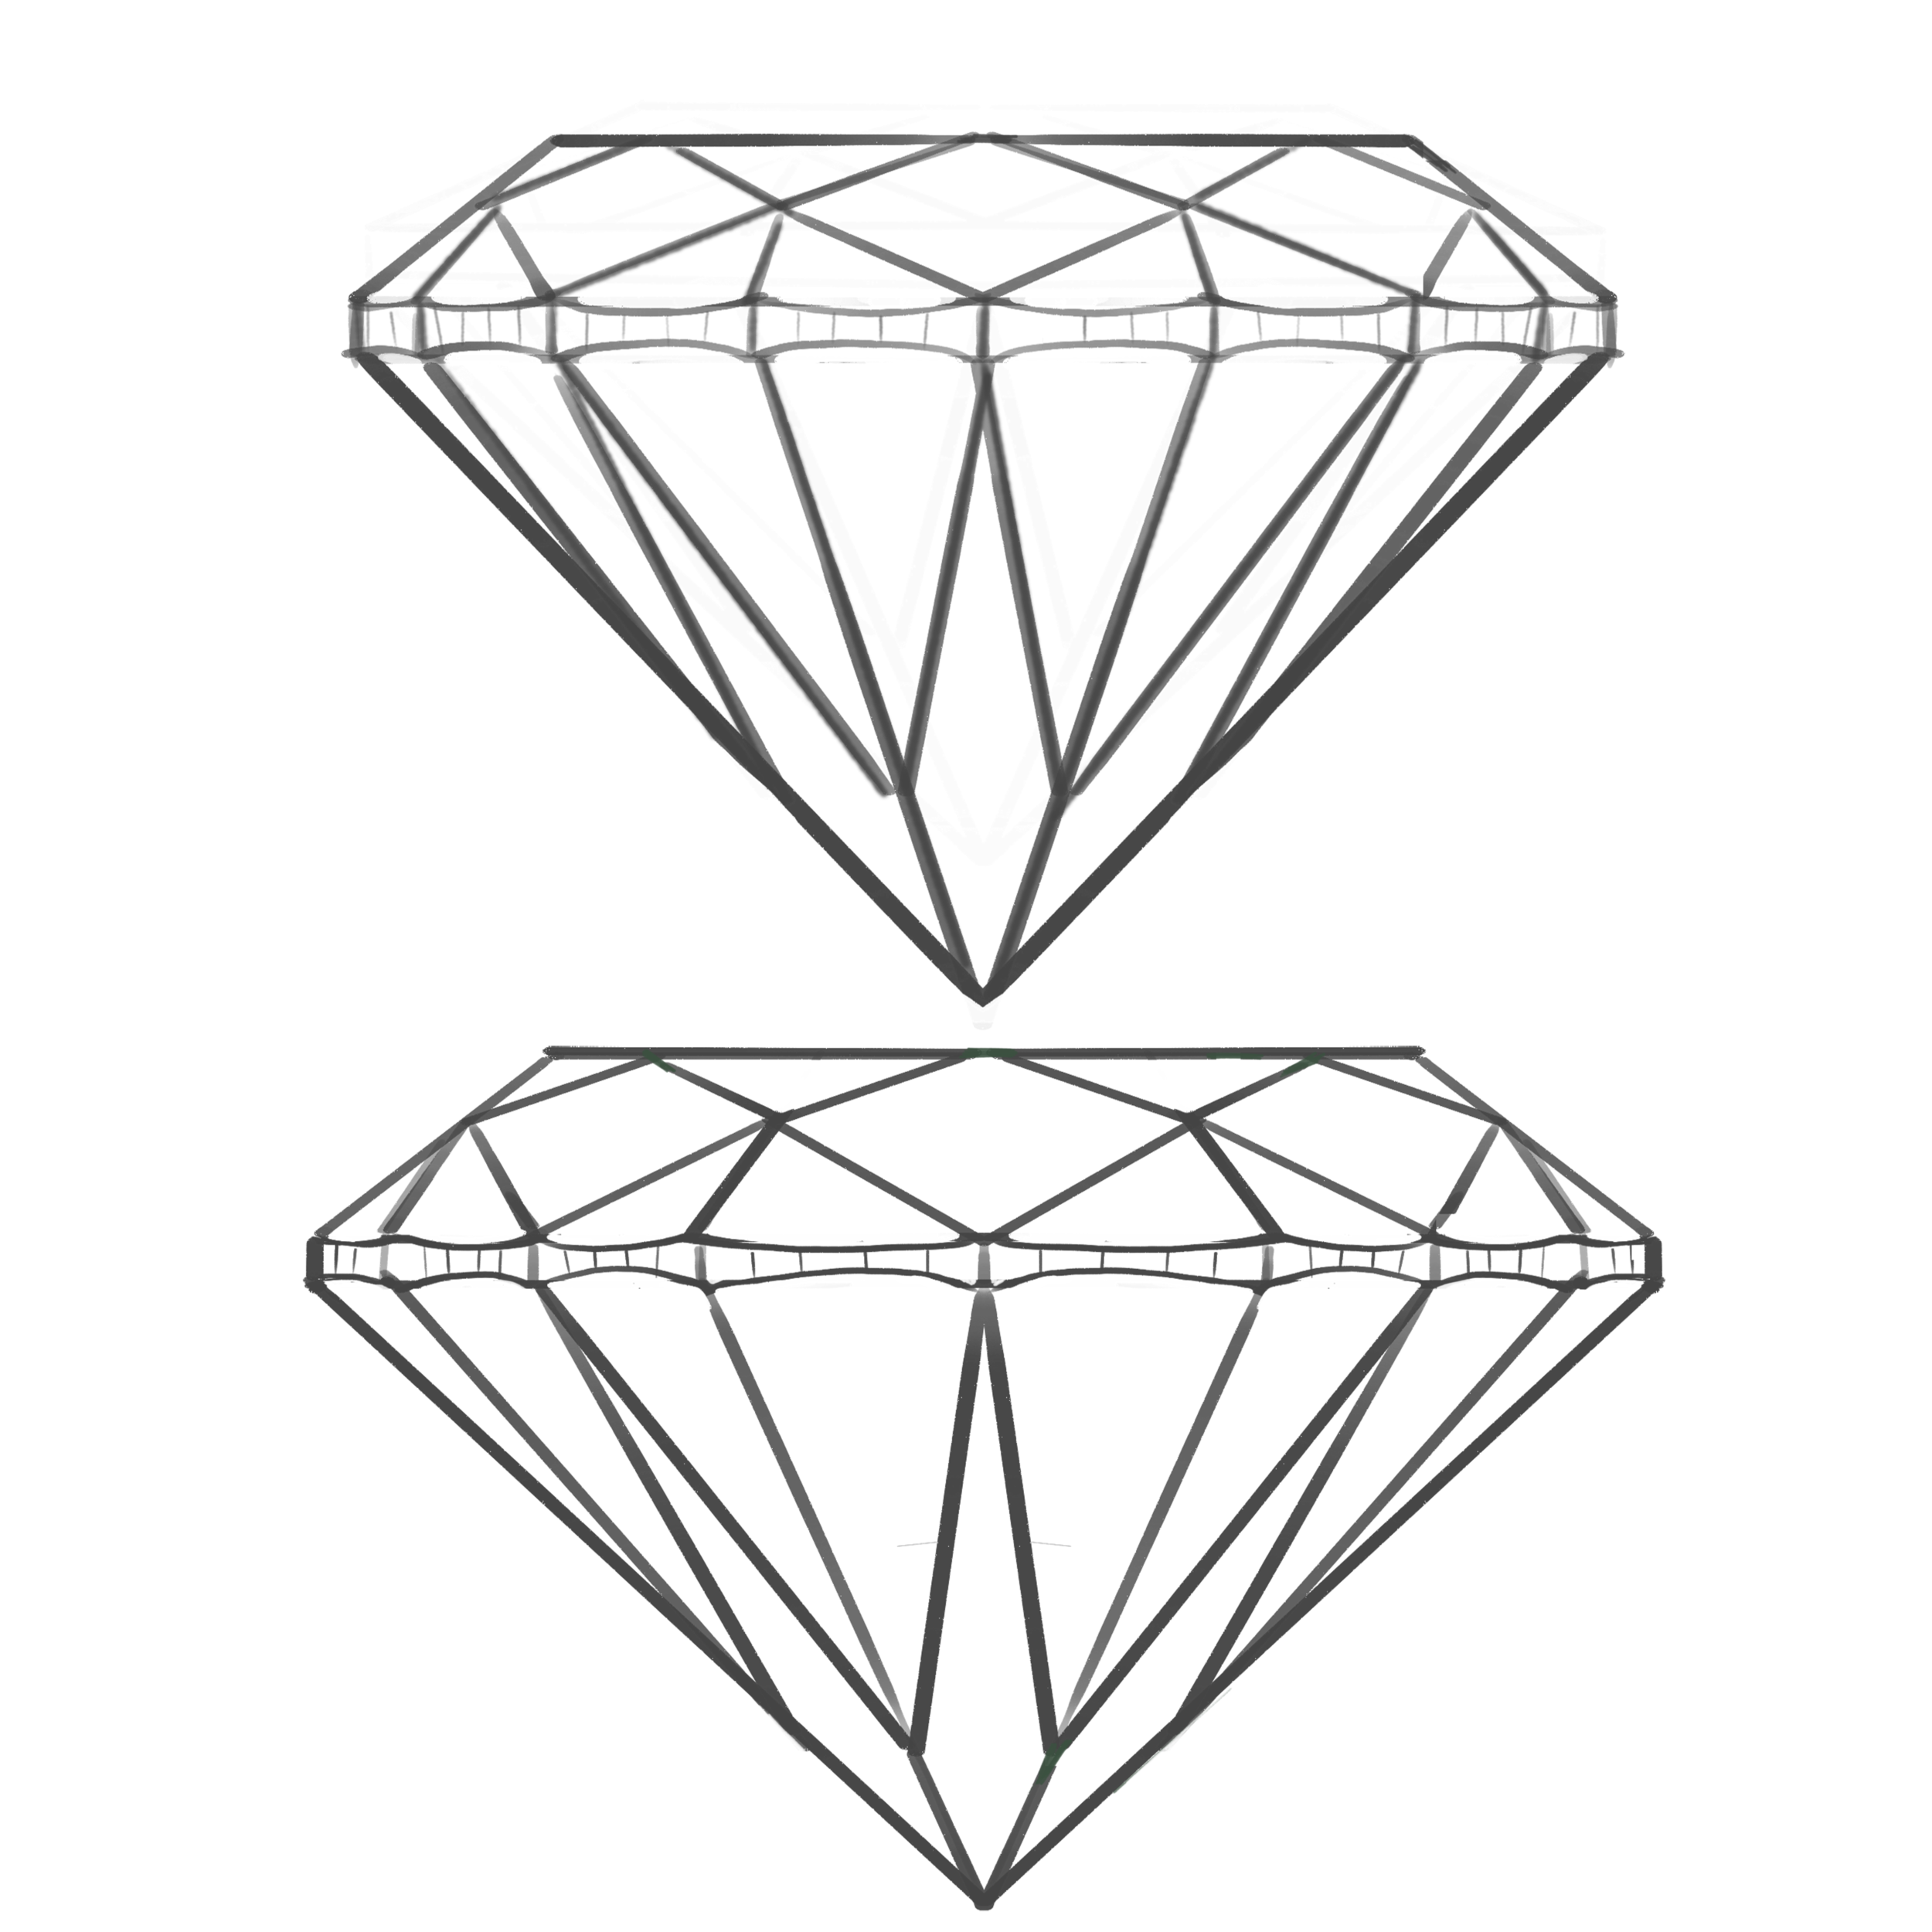 The stone on the bottom is closer to ideal proportions for a brilliant style diamond